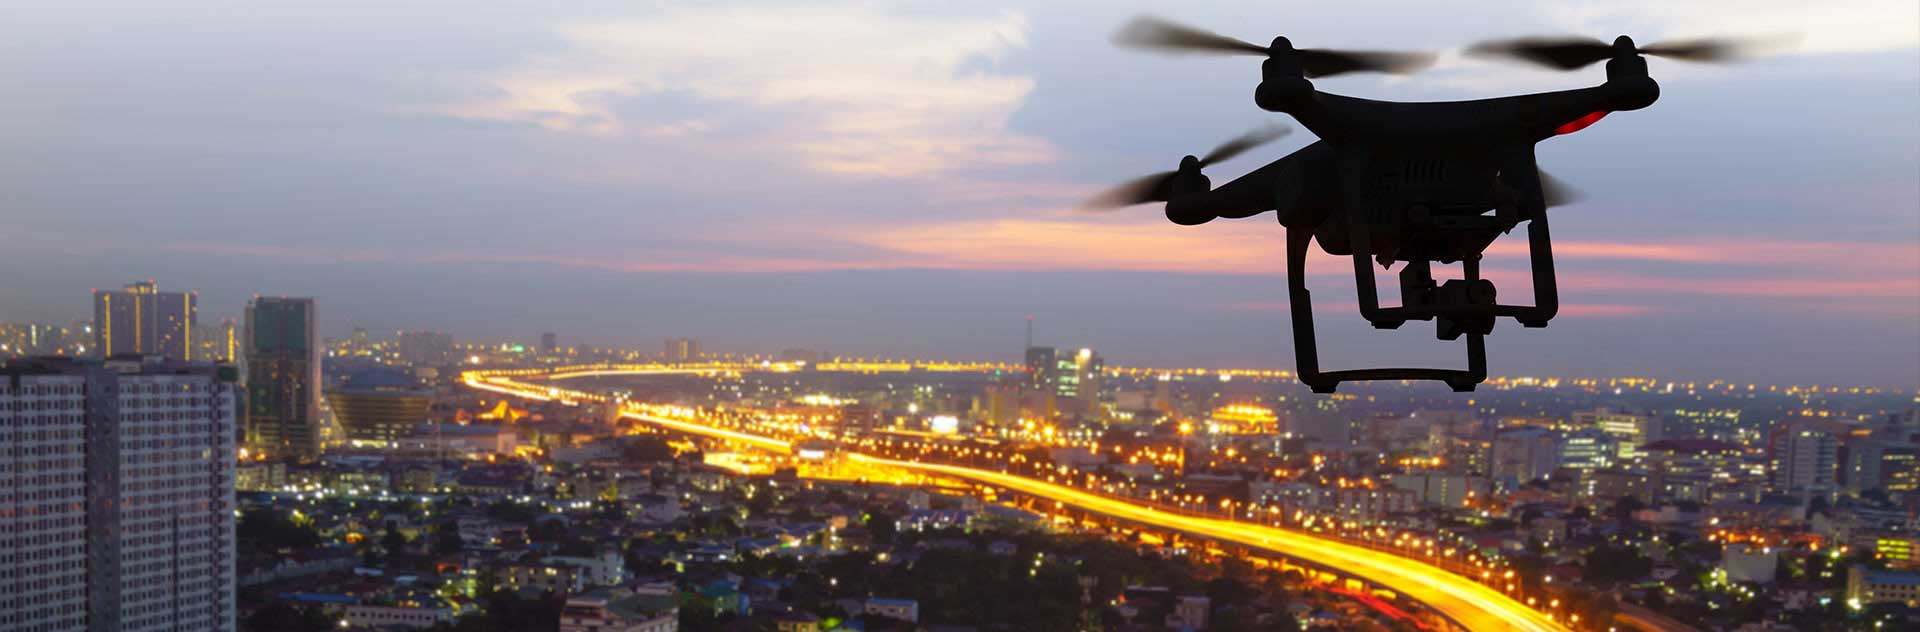 Fortion 1SkyUTM enables safe drone traffic coordination and traffic management for unmanned aircraft systems